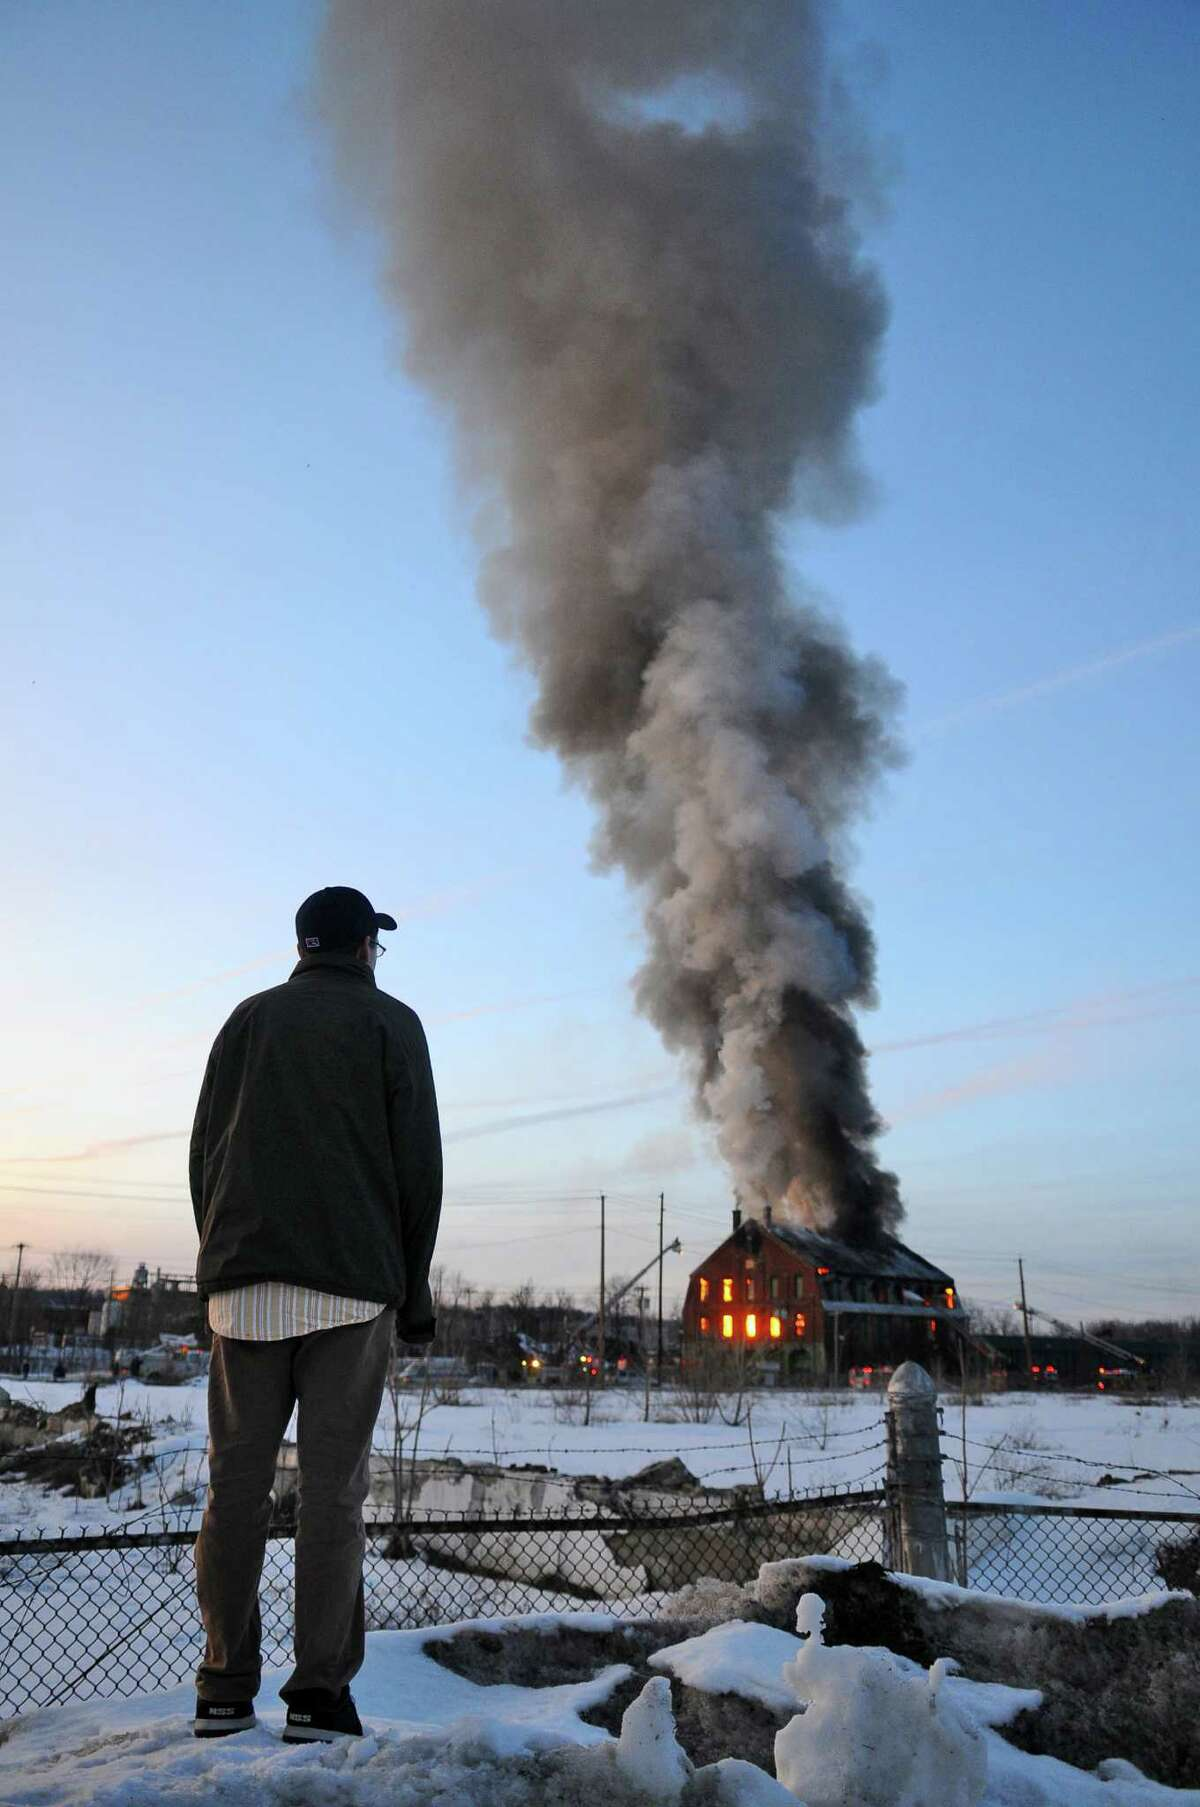 Spectators stand on a snow bank to watch firefighters douse flames on a building at R Kelly Freedman & Son Inc. scrap yard on Thursday evening Mar. 3, 2011 in Green Island, NY. The plume of smoke could be seen from miles away.( Philip Kamrass / Times Union )